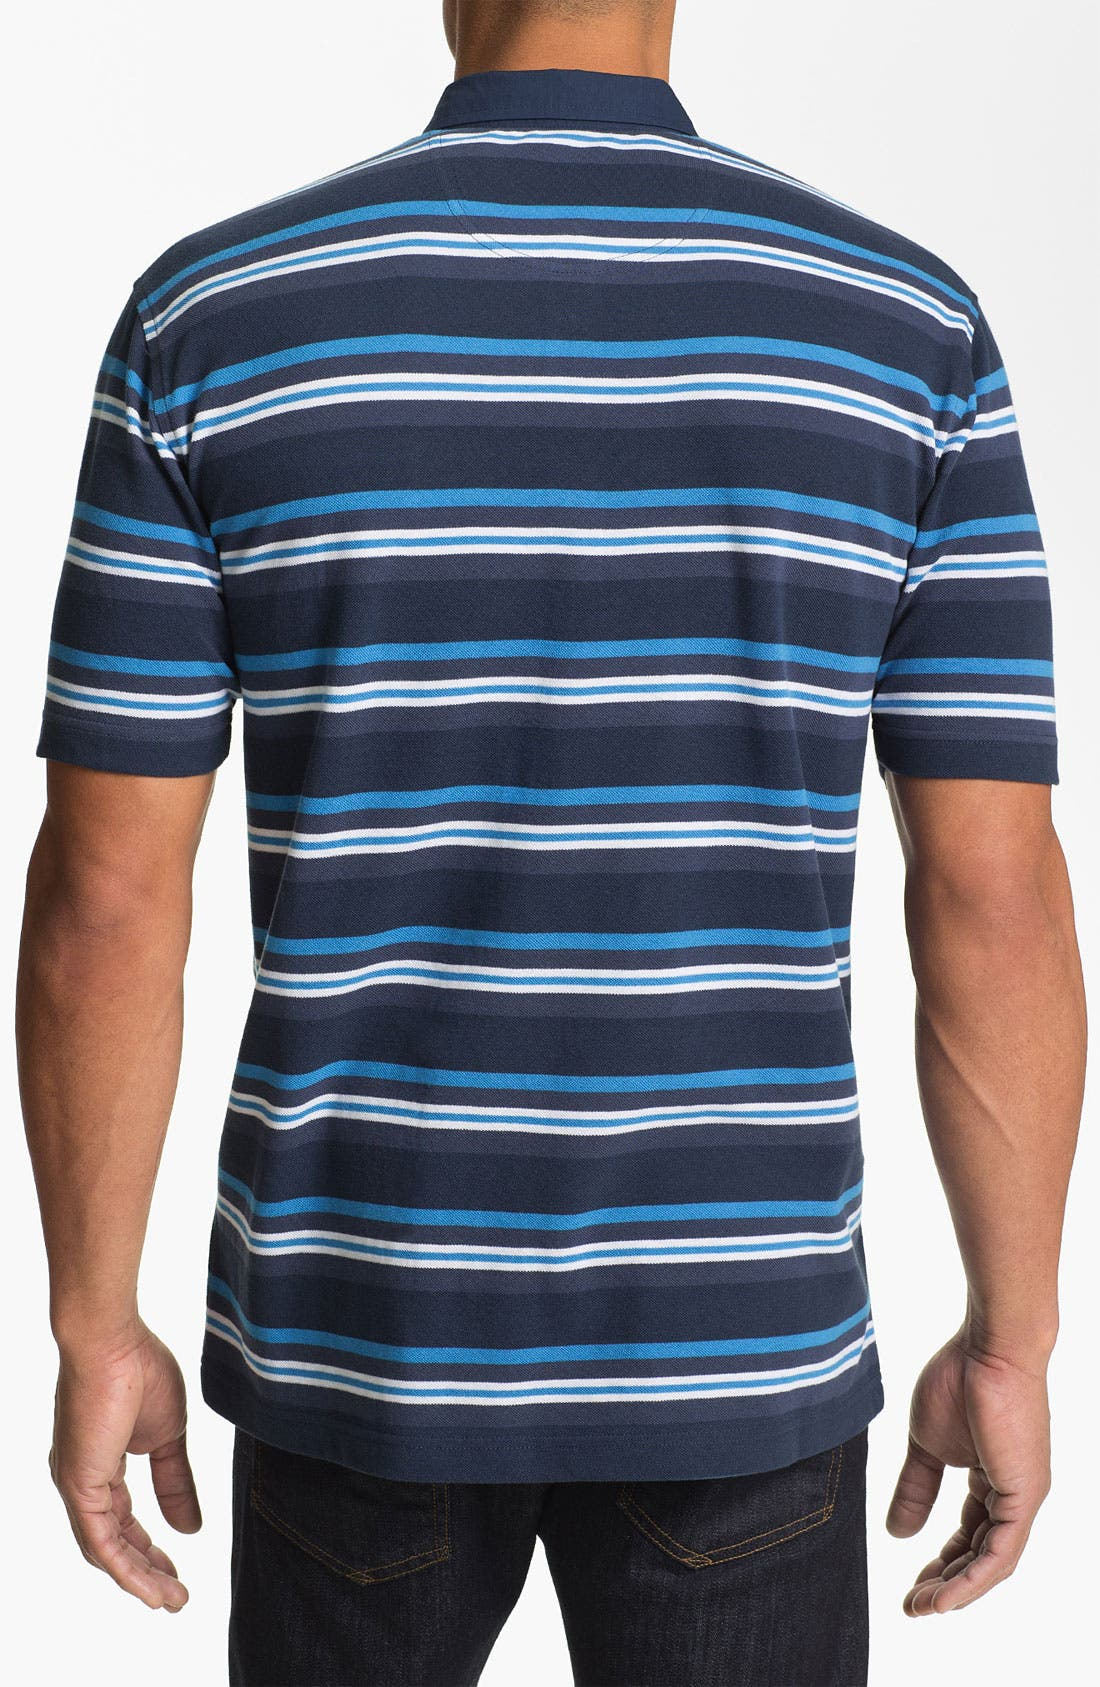 Alternate Image 2  - Cutter & Buck 'Victory Heights Stripe' Regular Fit Polo (Big & Tall)